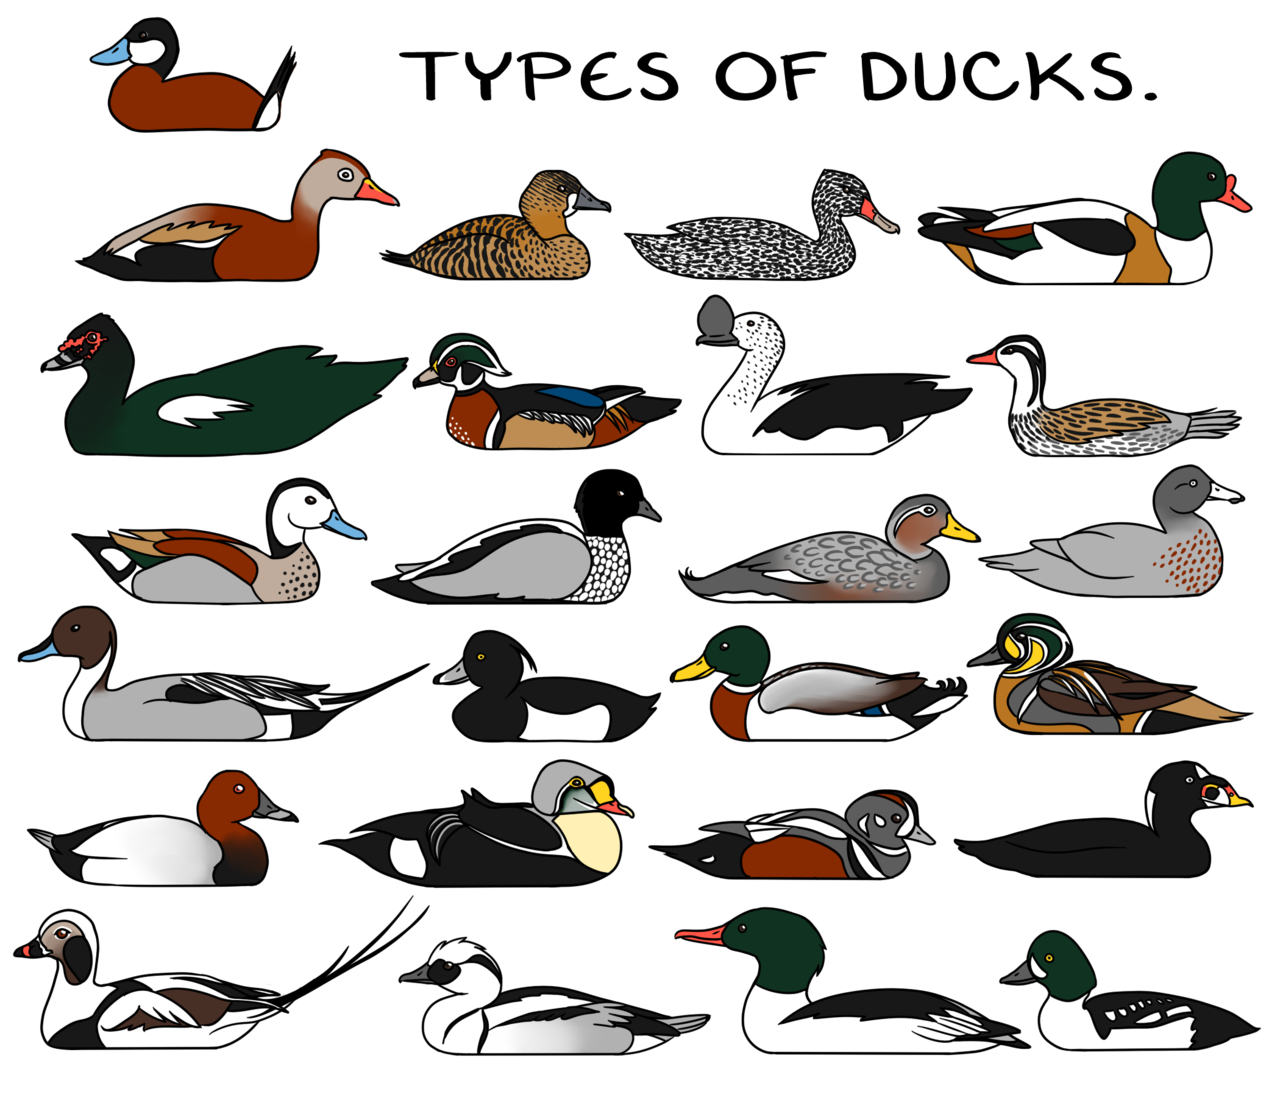 Types of by twapa. Ducks clipart group duck